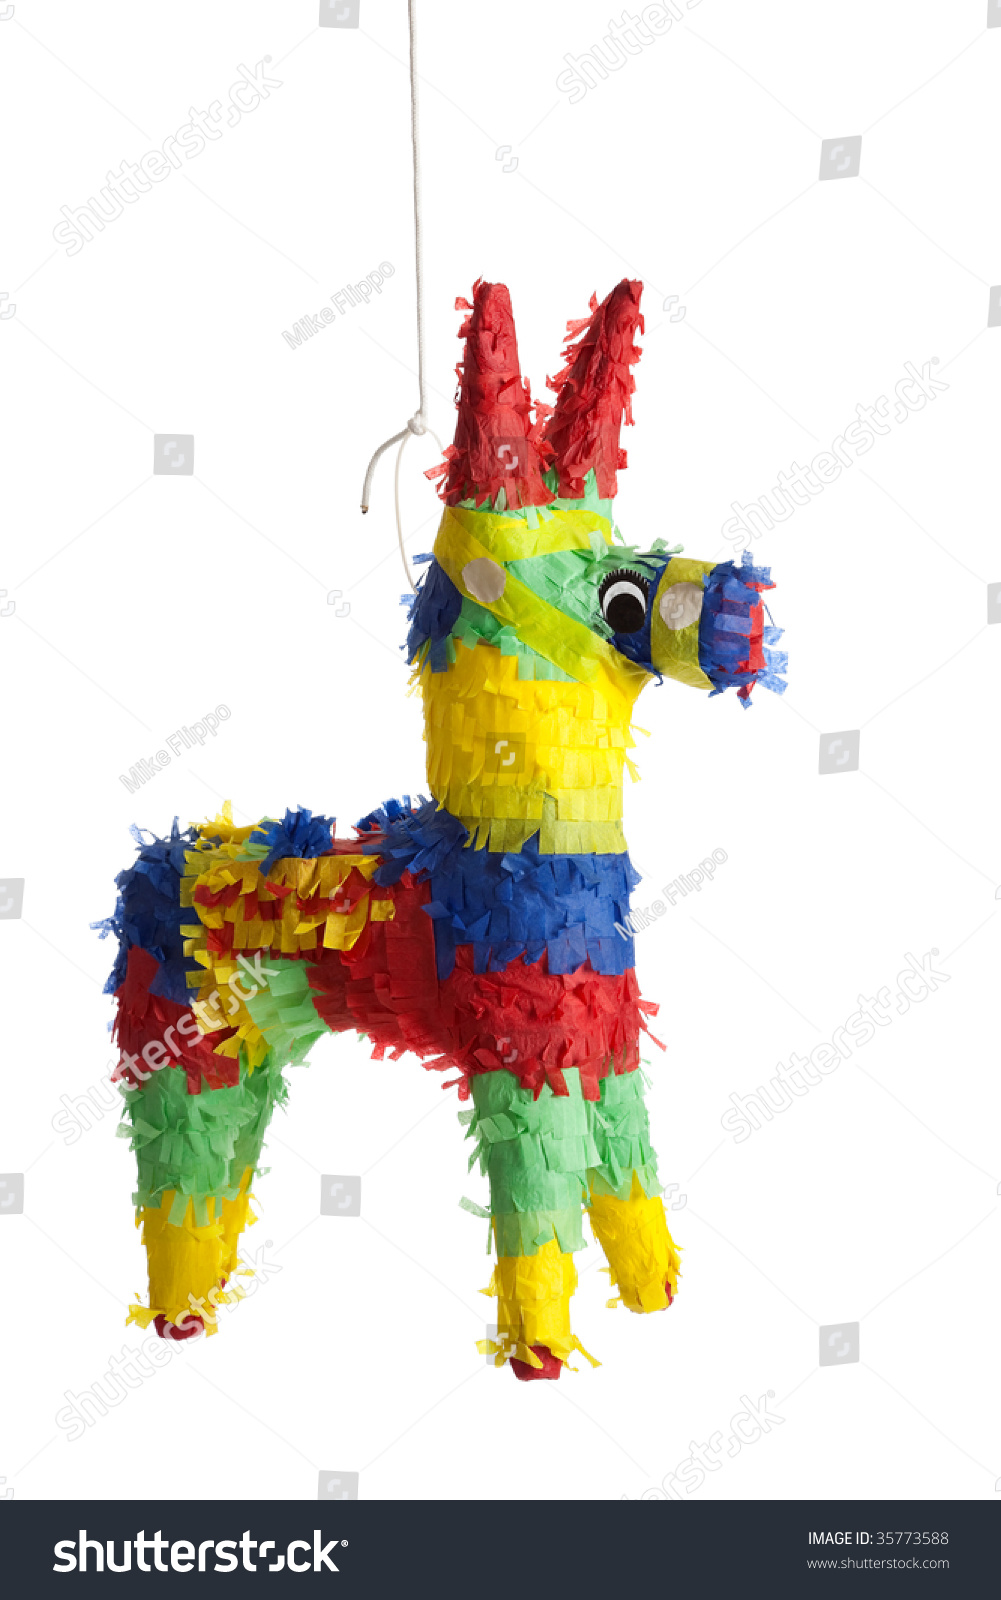 Party Pinata Traditional Primary Colored Mexican Party Pinata Stock Photo Edit